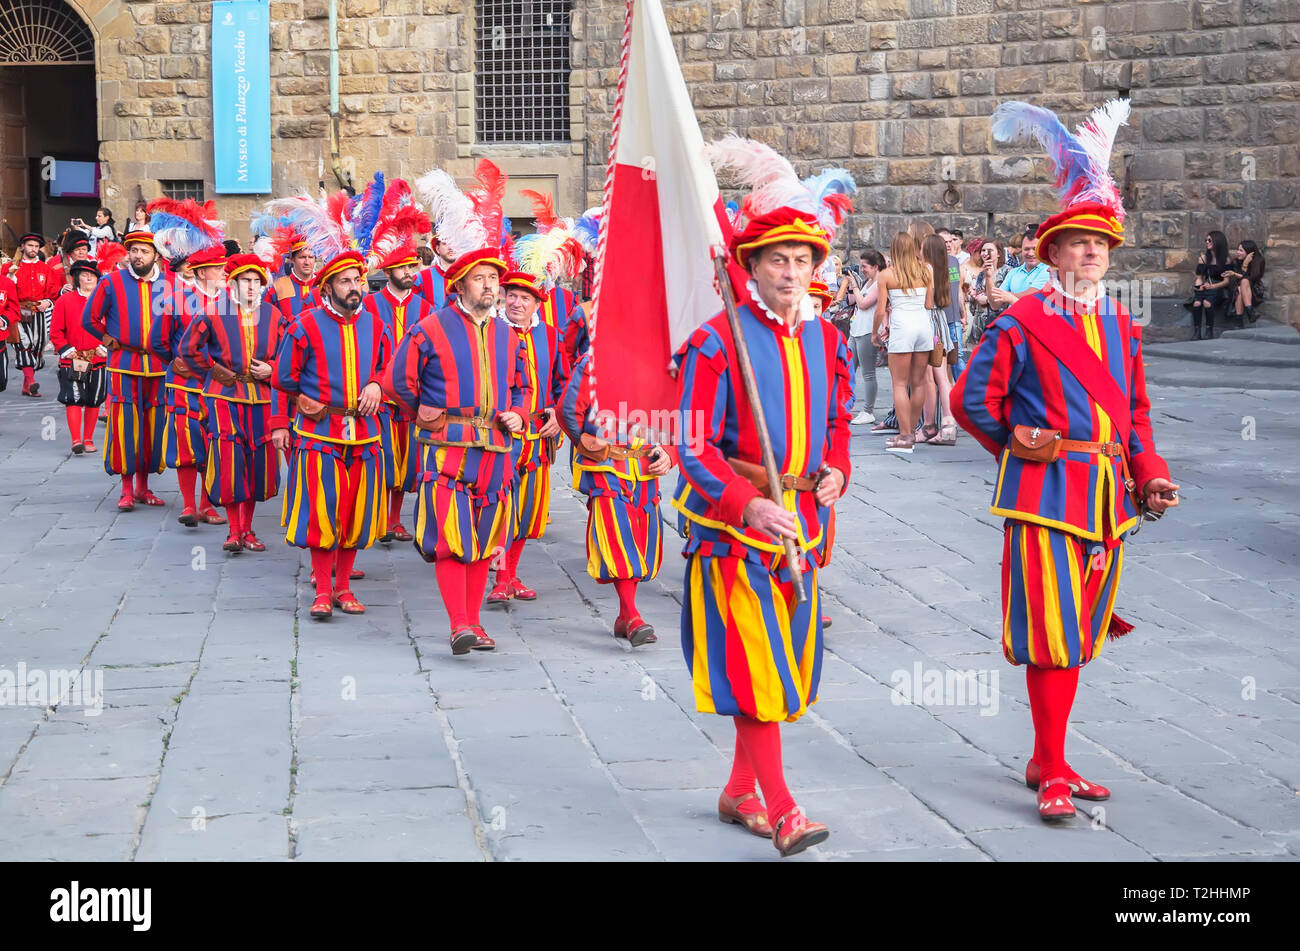 Men marching in costume during Calcio Storico Fiorentino festival at Piazza della Signoria in Florence, Tuscany, Italy, Europe Stock Photo